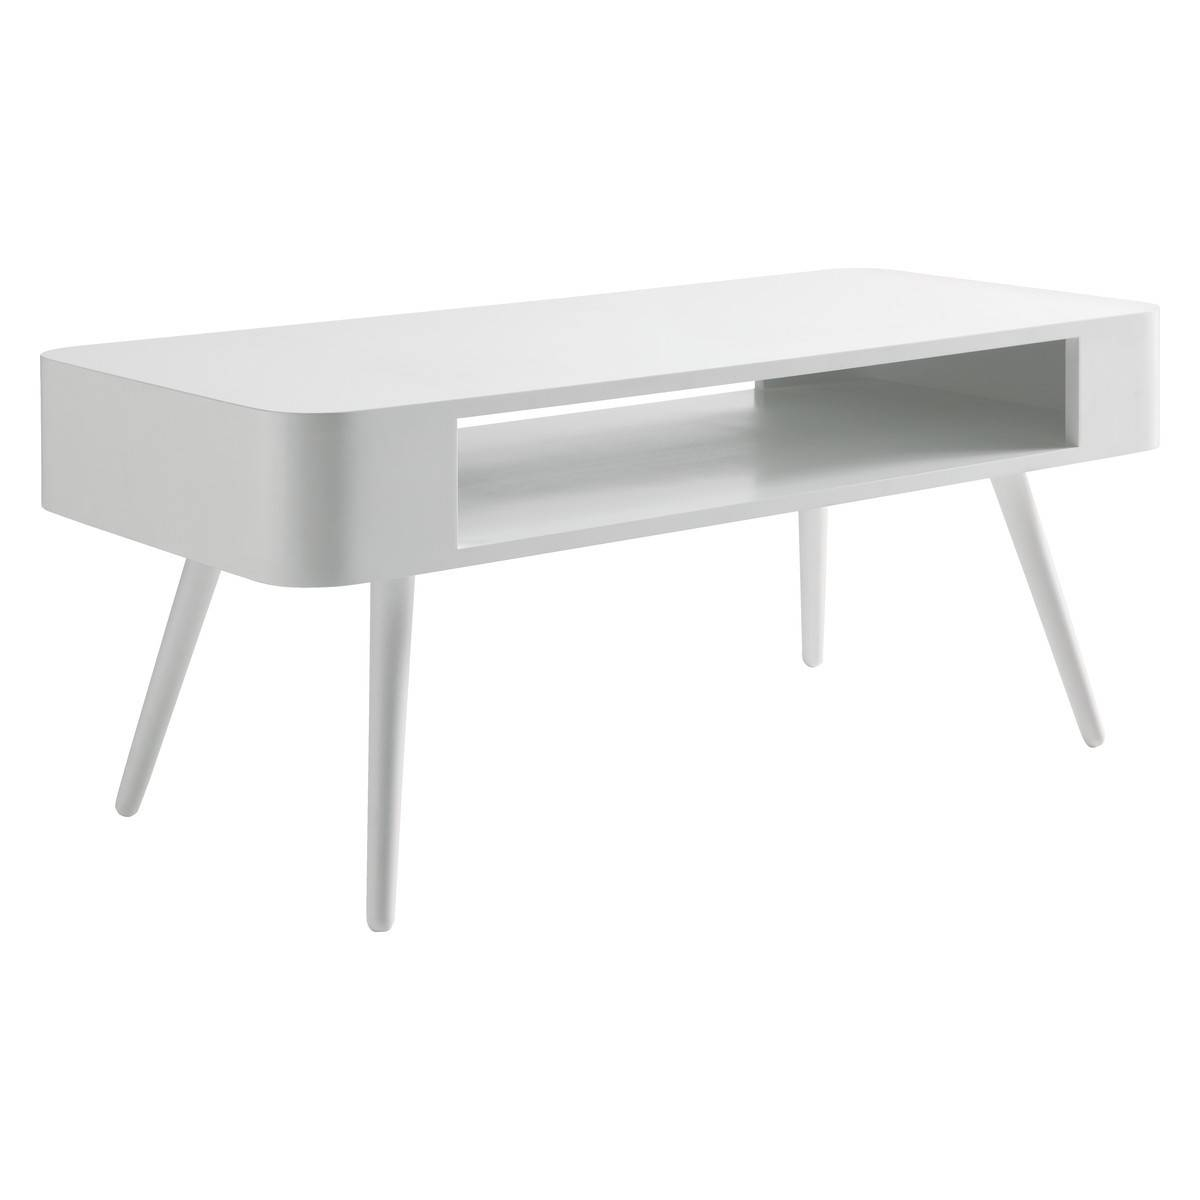 Coffee Tables: Wonderful White Coffee Tables Design Ideas White pertaining to White Retro Coffee Tables (Image 11 of 30)